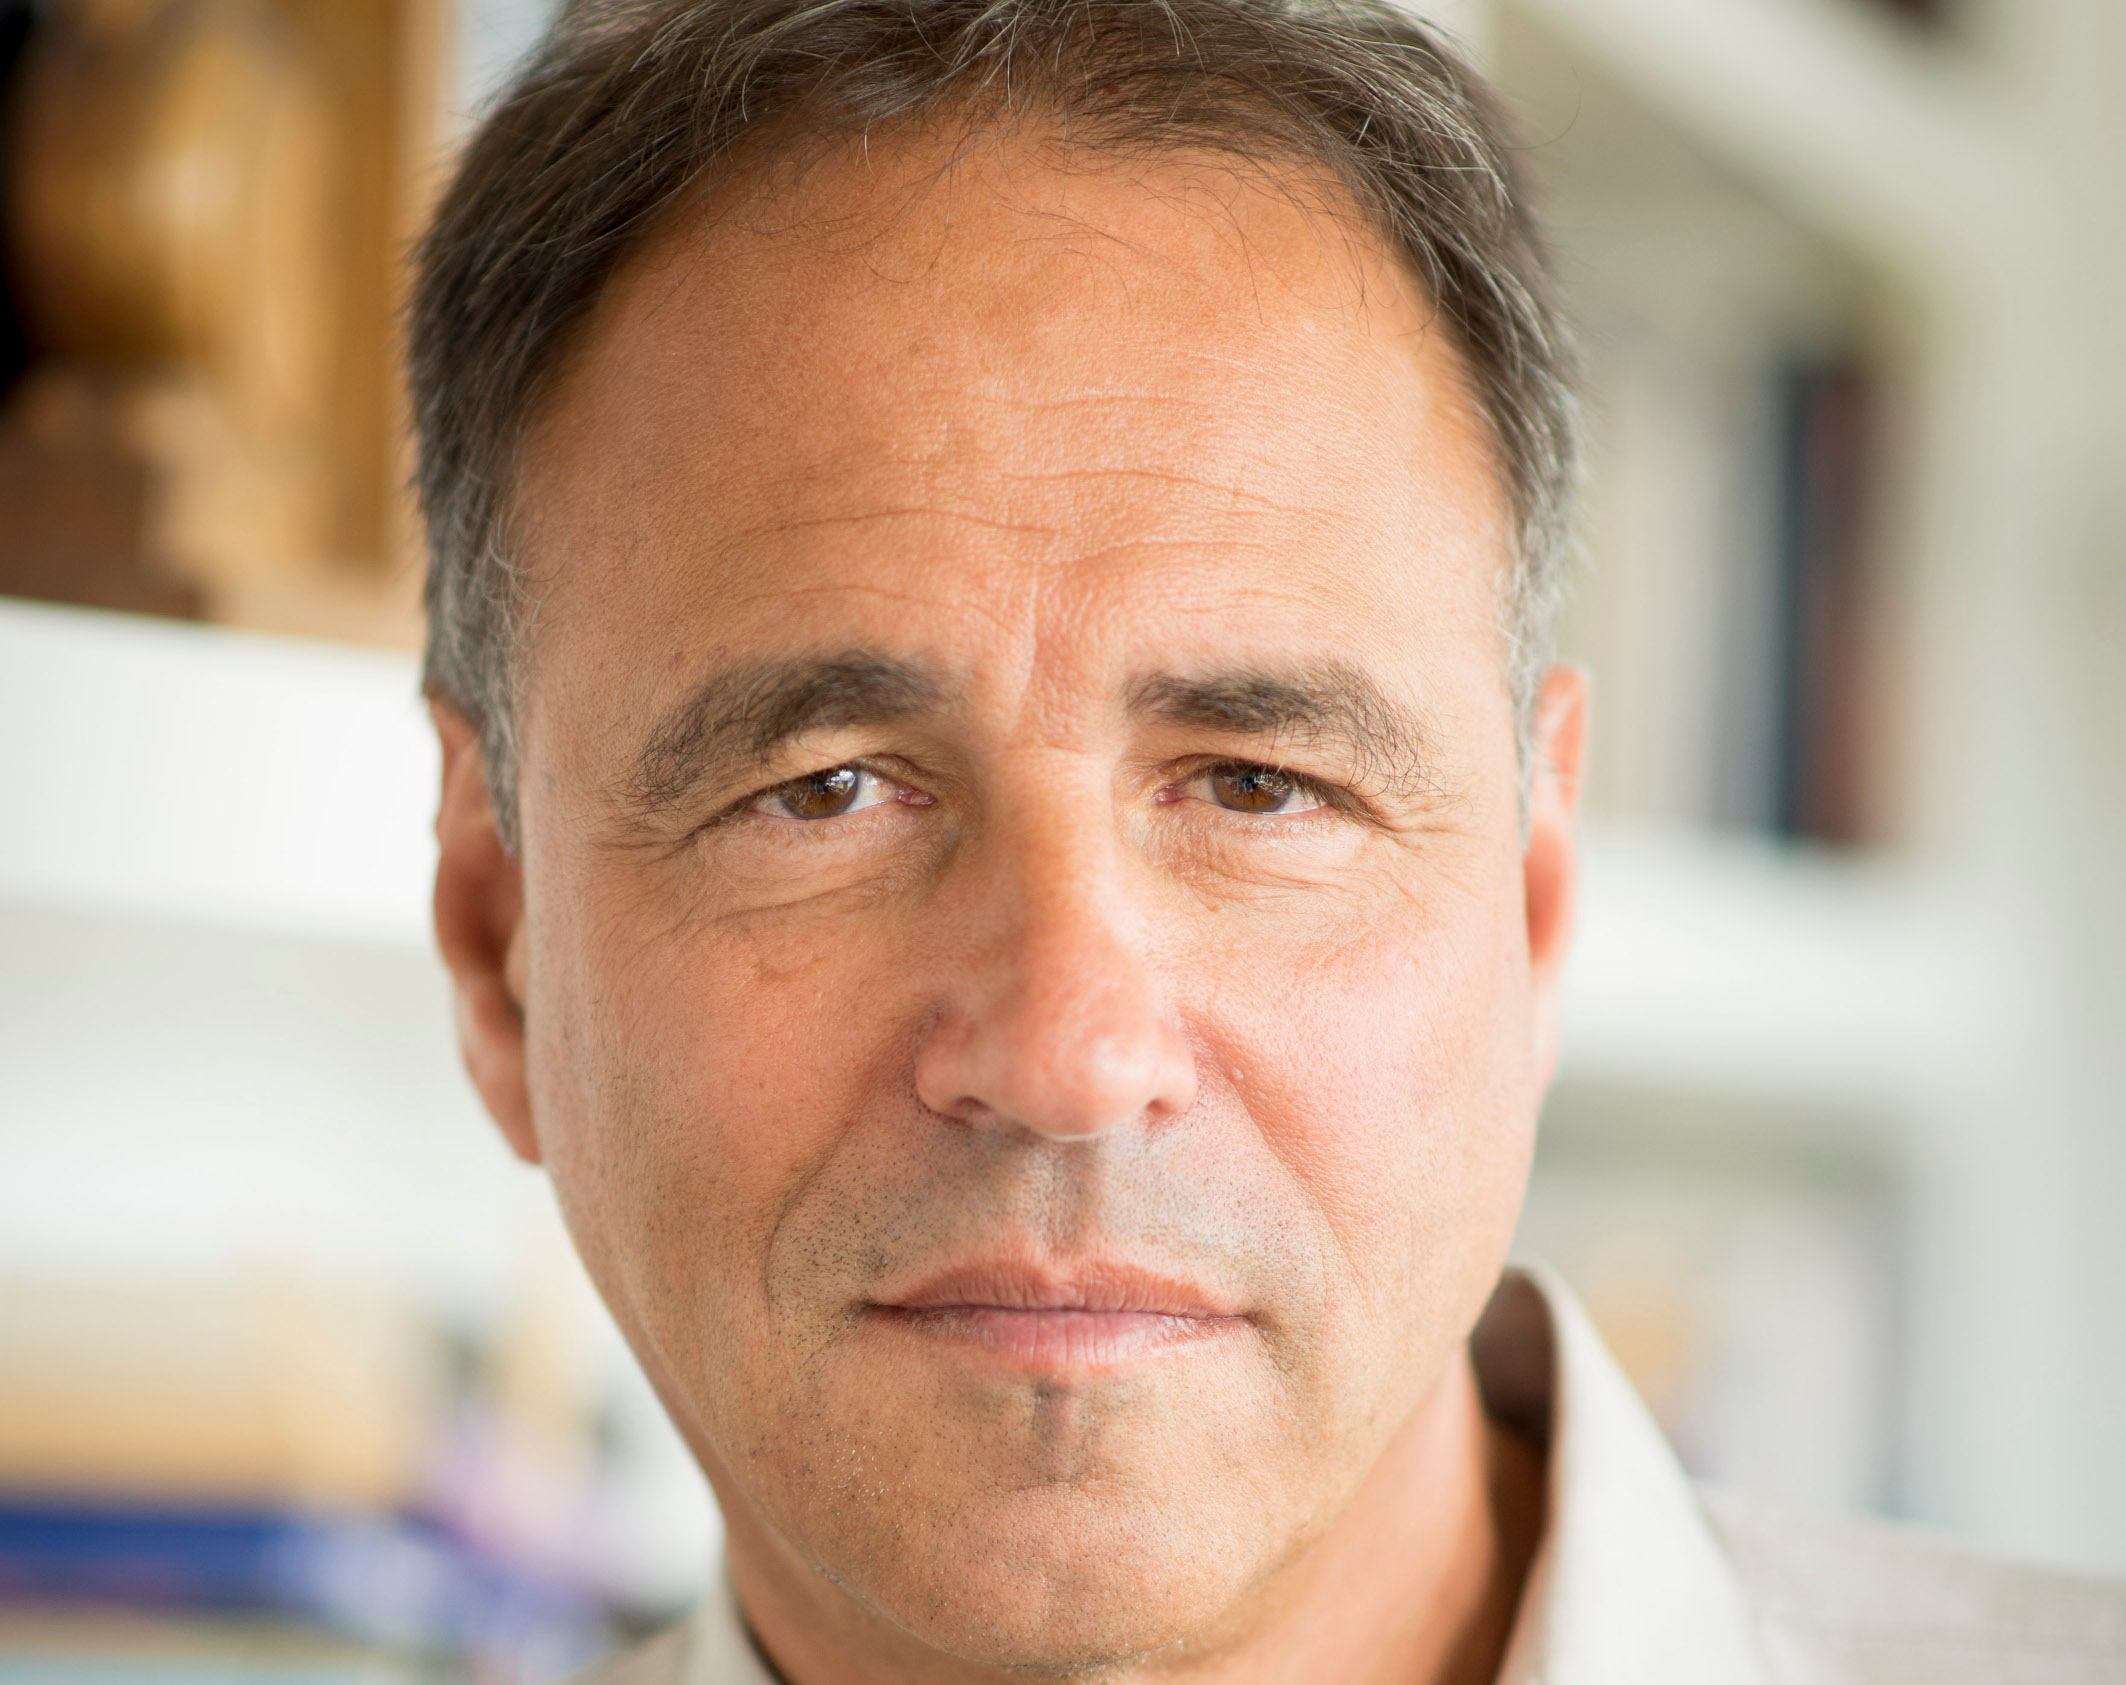 Image of Anthony Horowitz